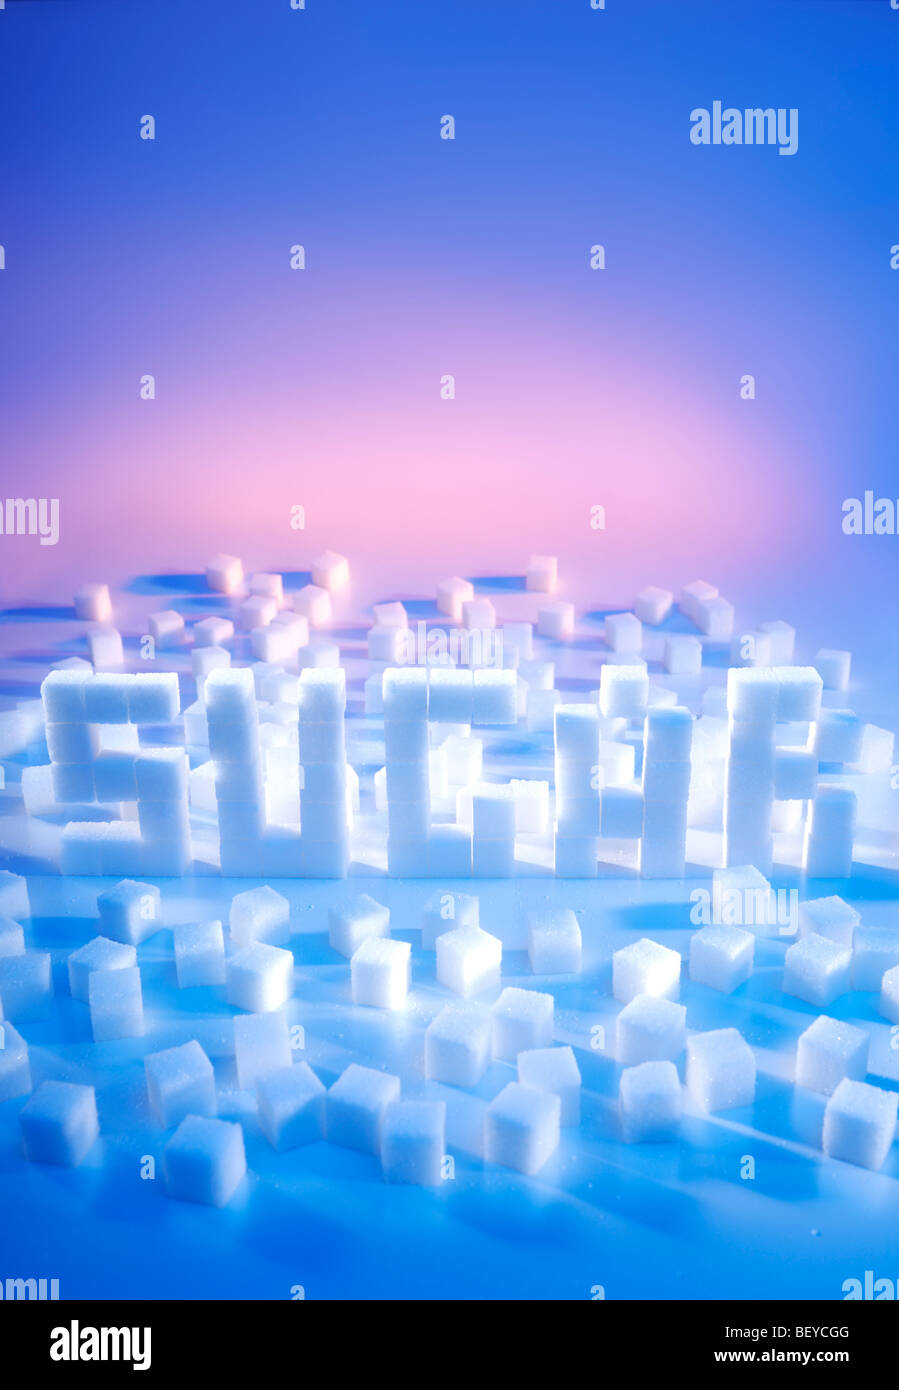 Word SUGAR made from sugar cubes - Stock Image